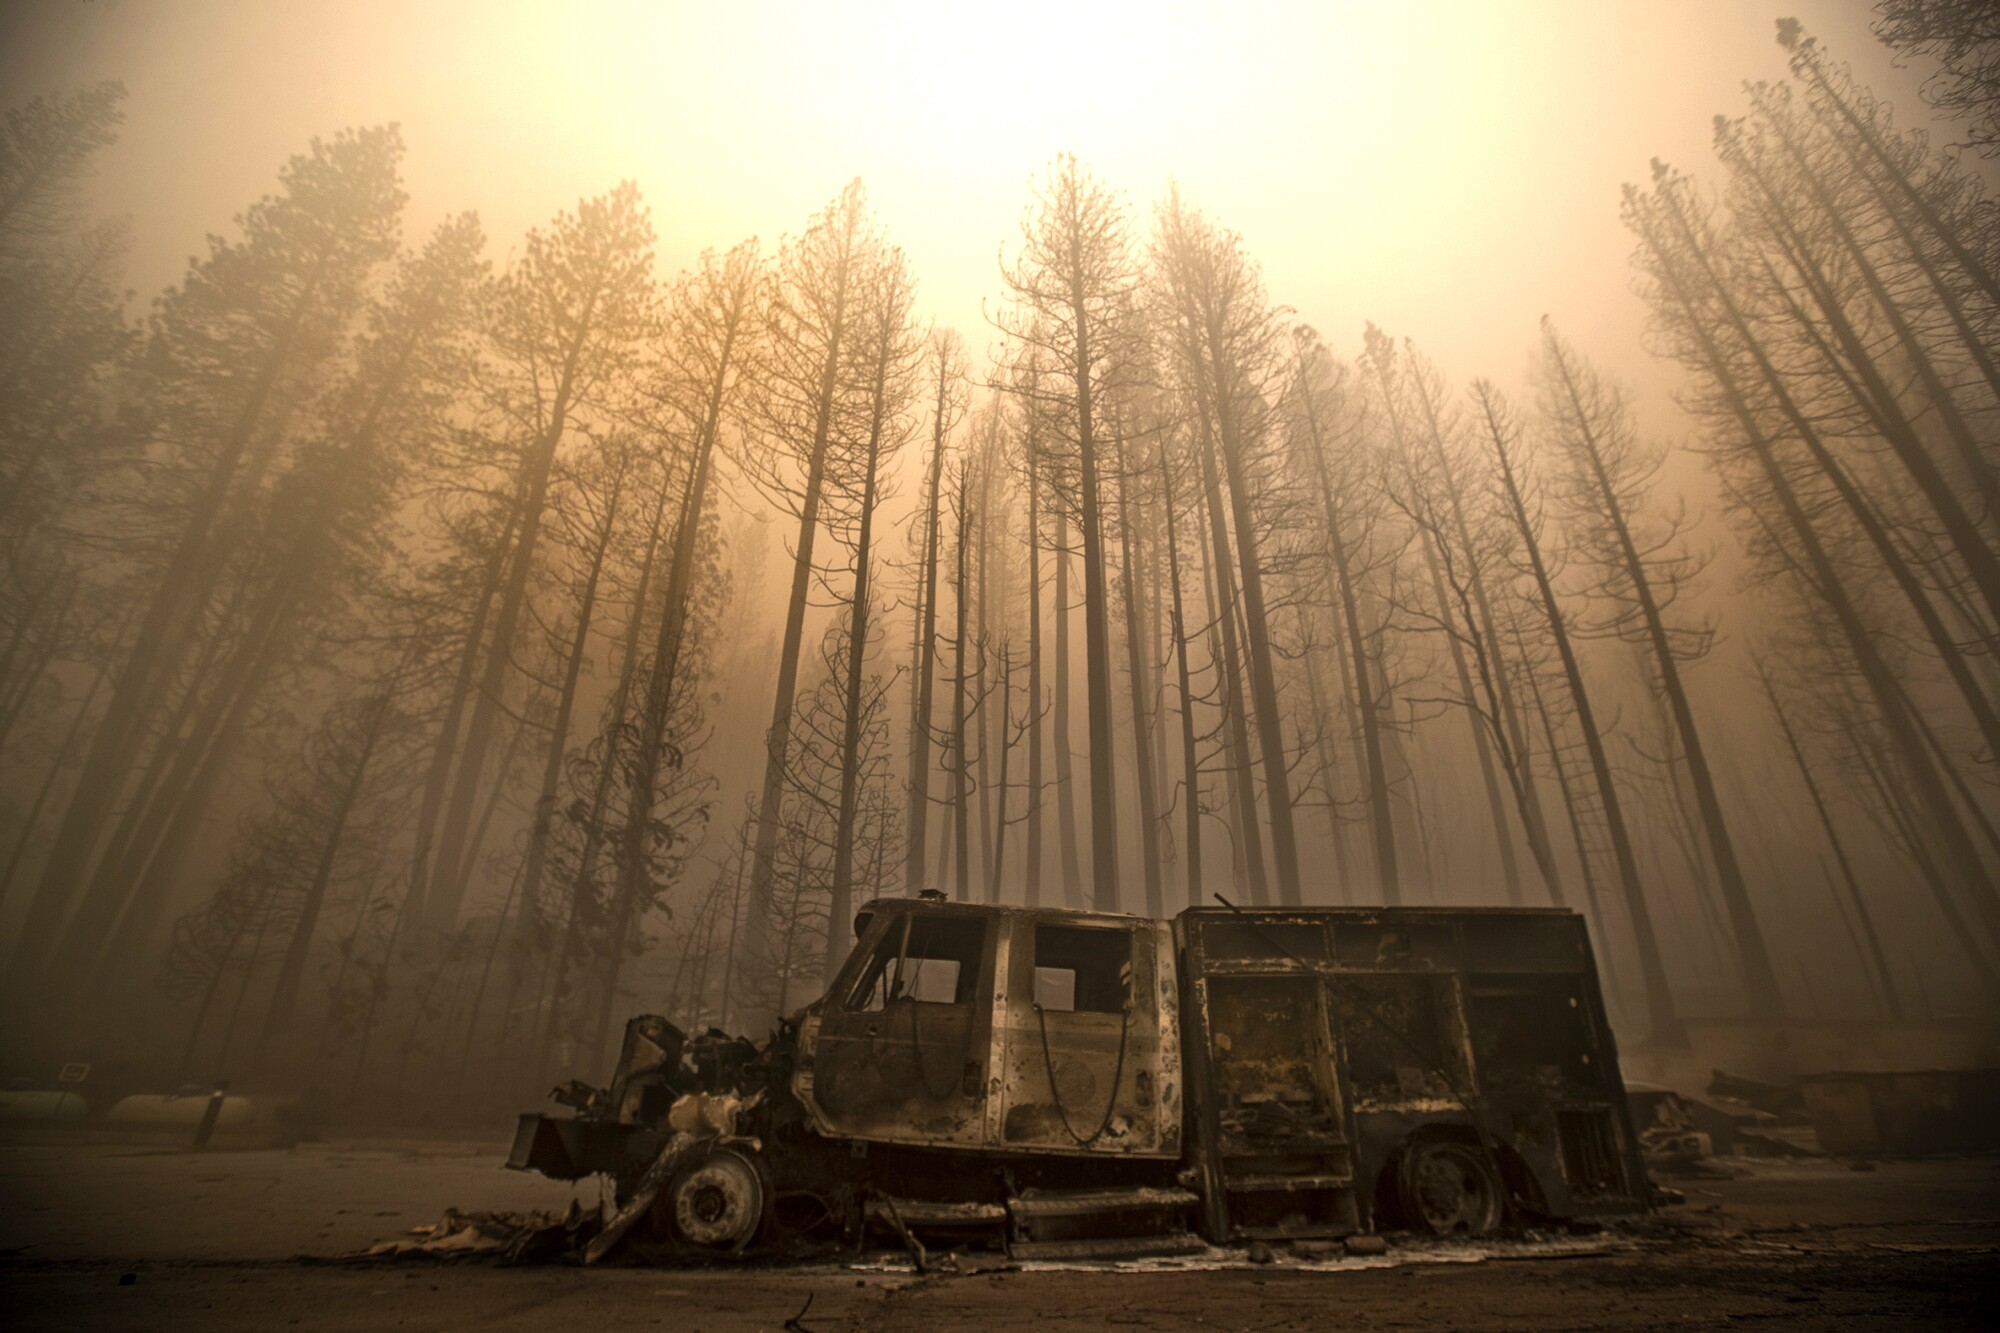 A burned fire truck is framed by trees destroyed in the Dixie fire in Greenville.